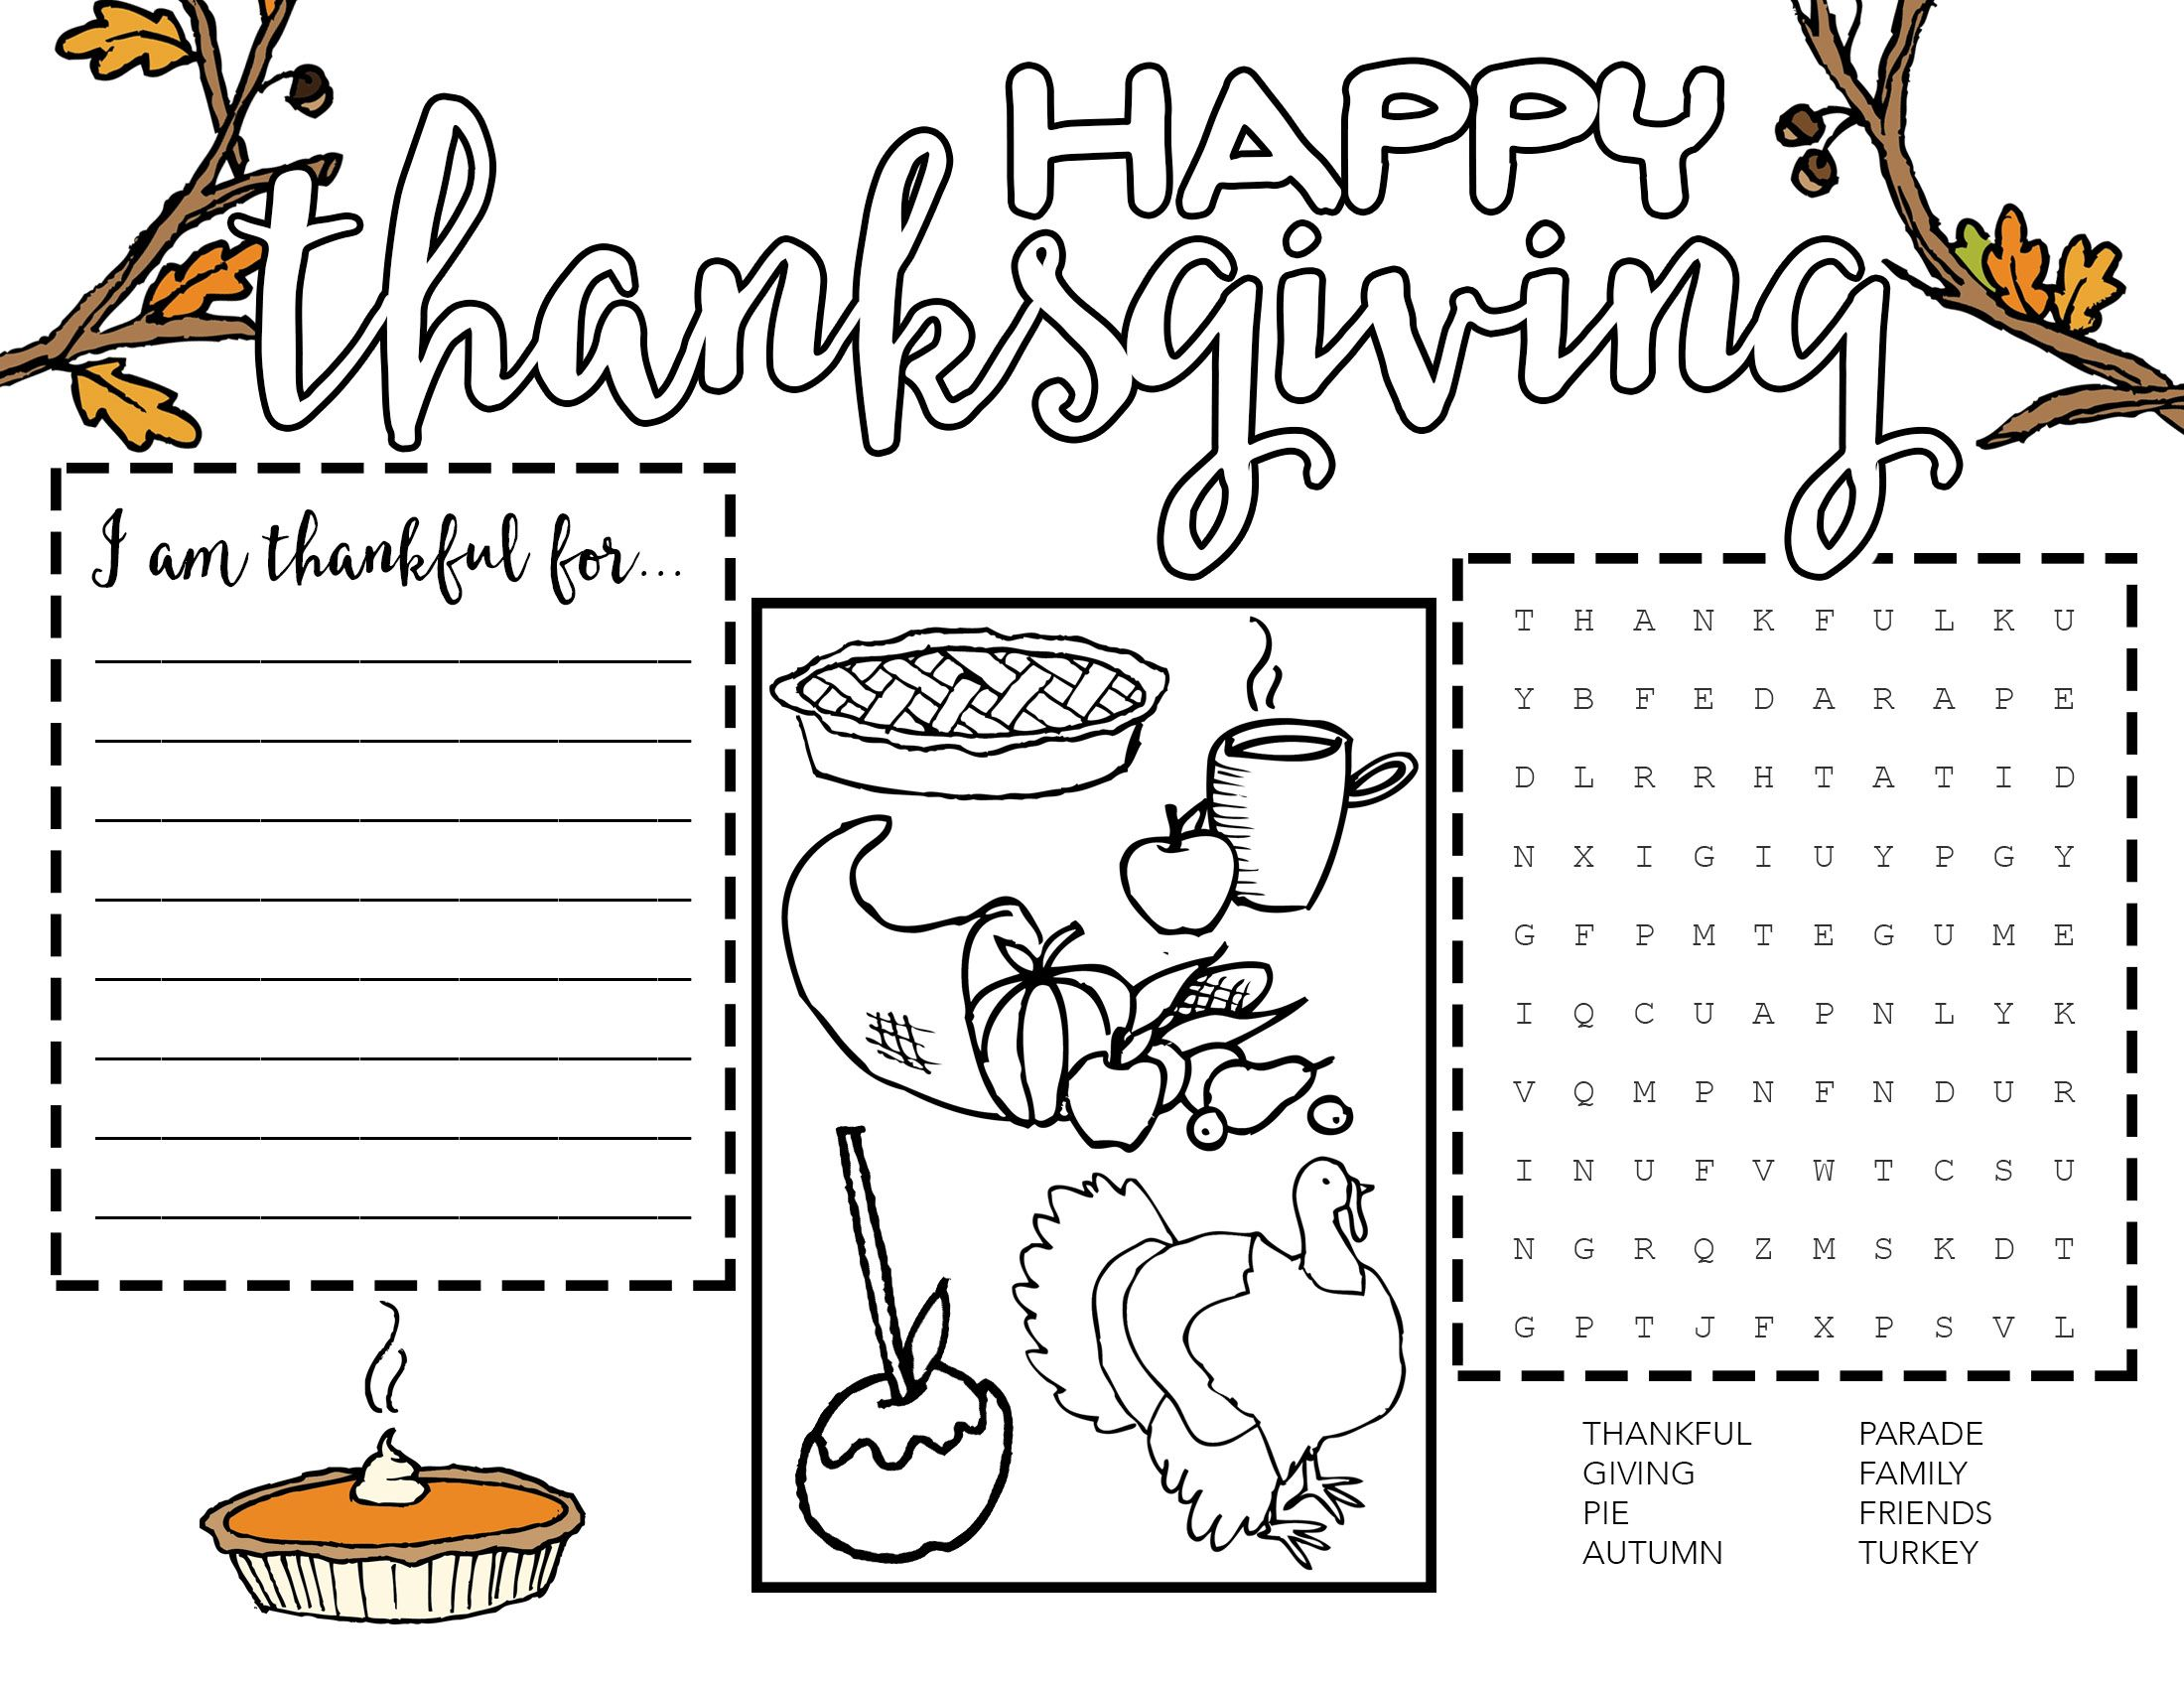 Free Printable Thanksgiving Placemat Wit Wander 2 200